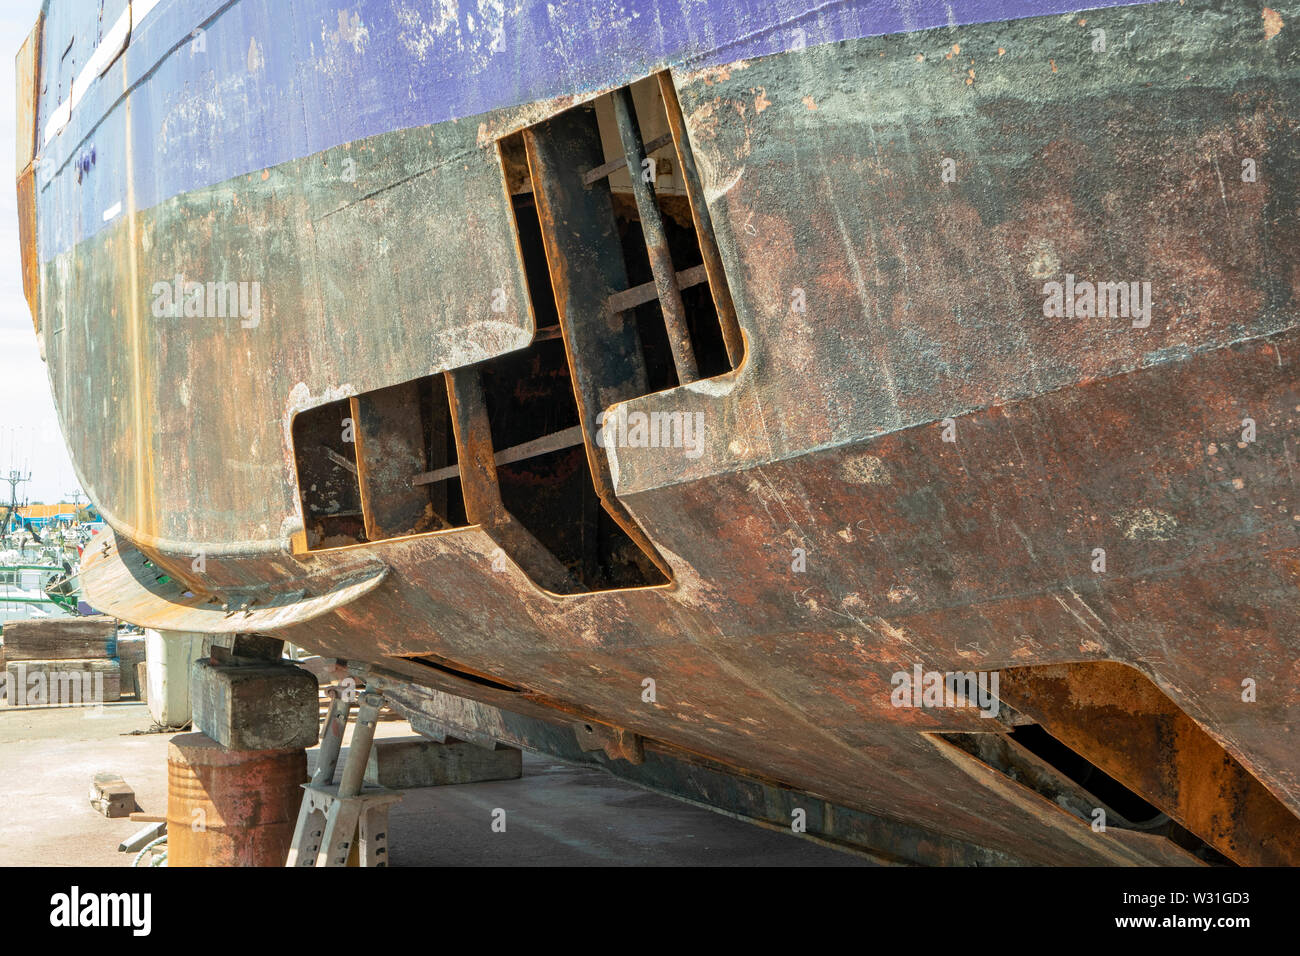 Ship is being repaired on its outer skin - Stock Image